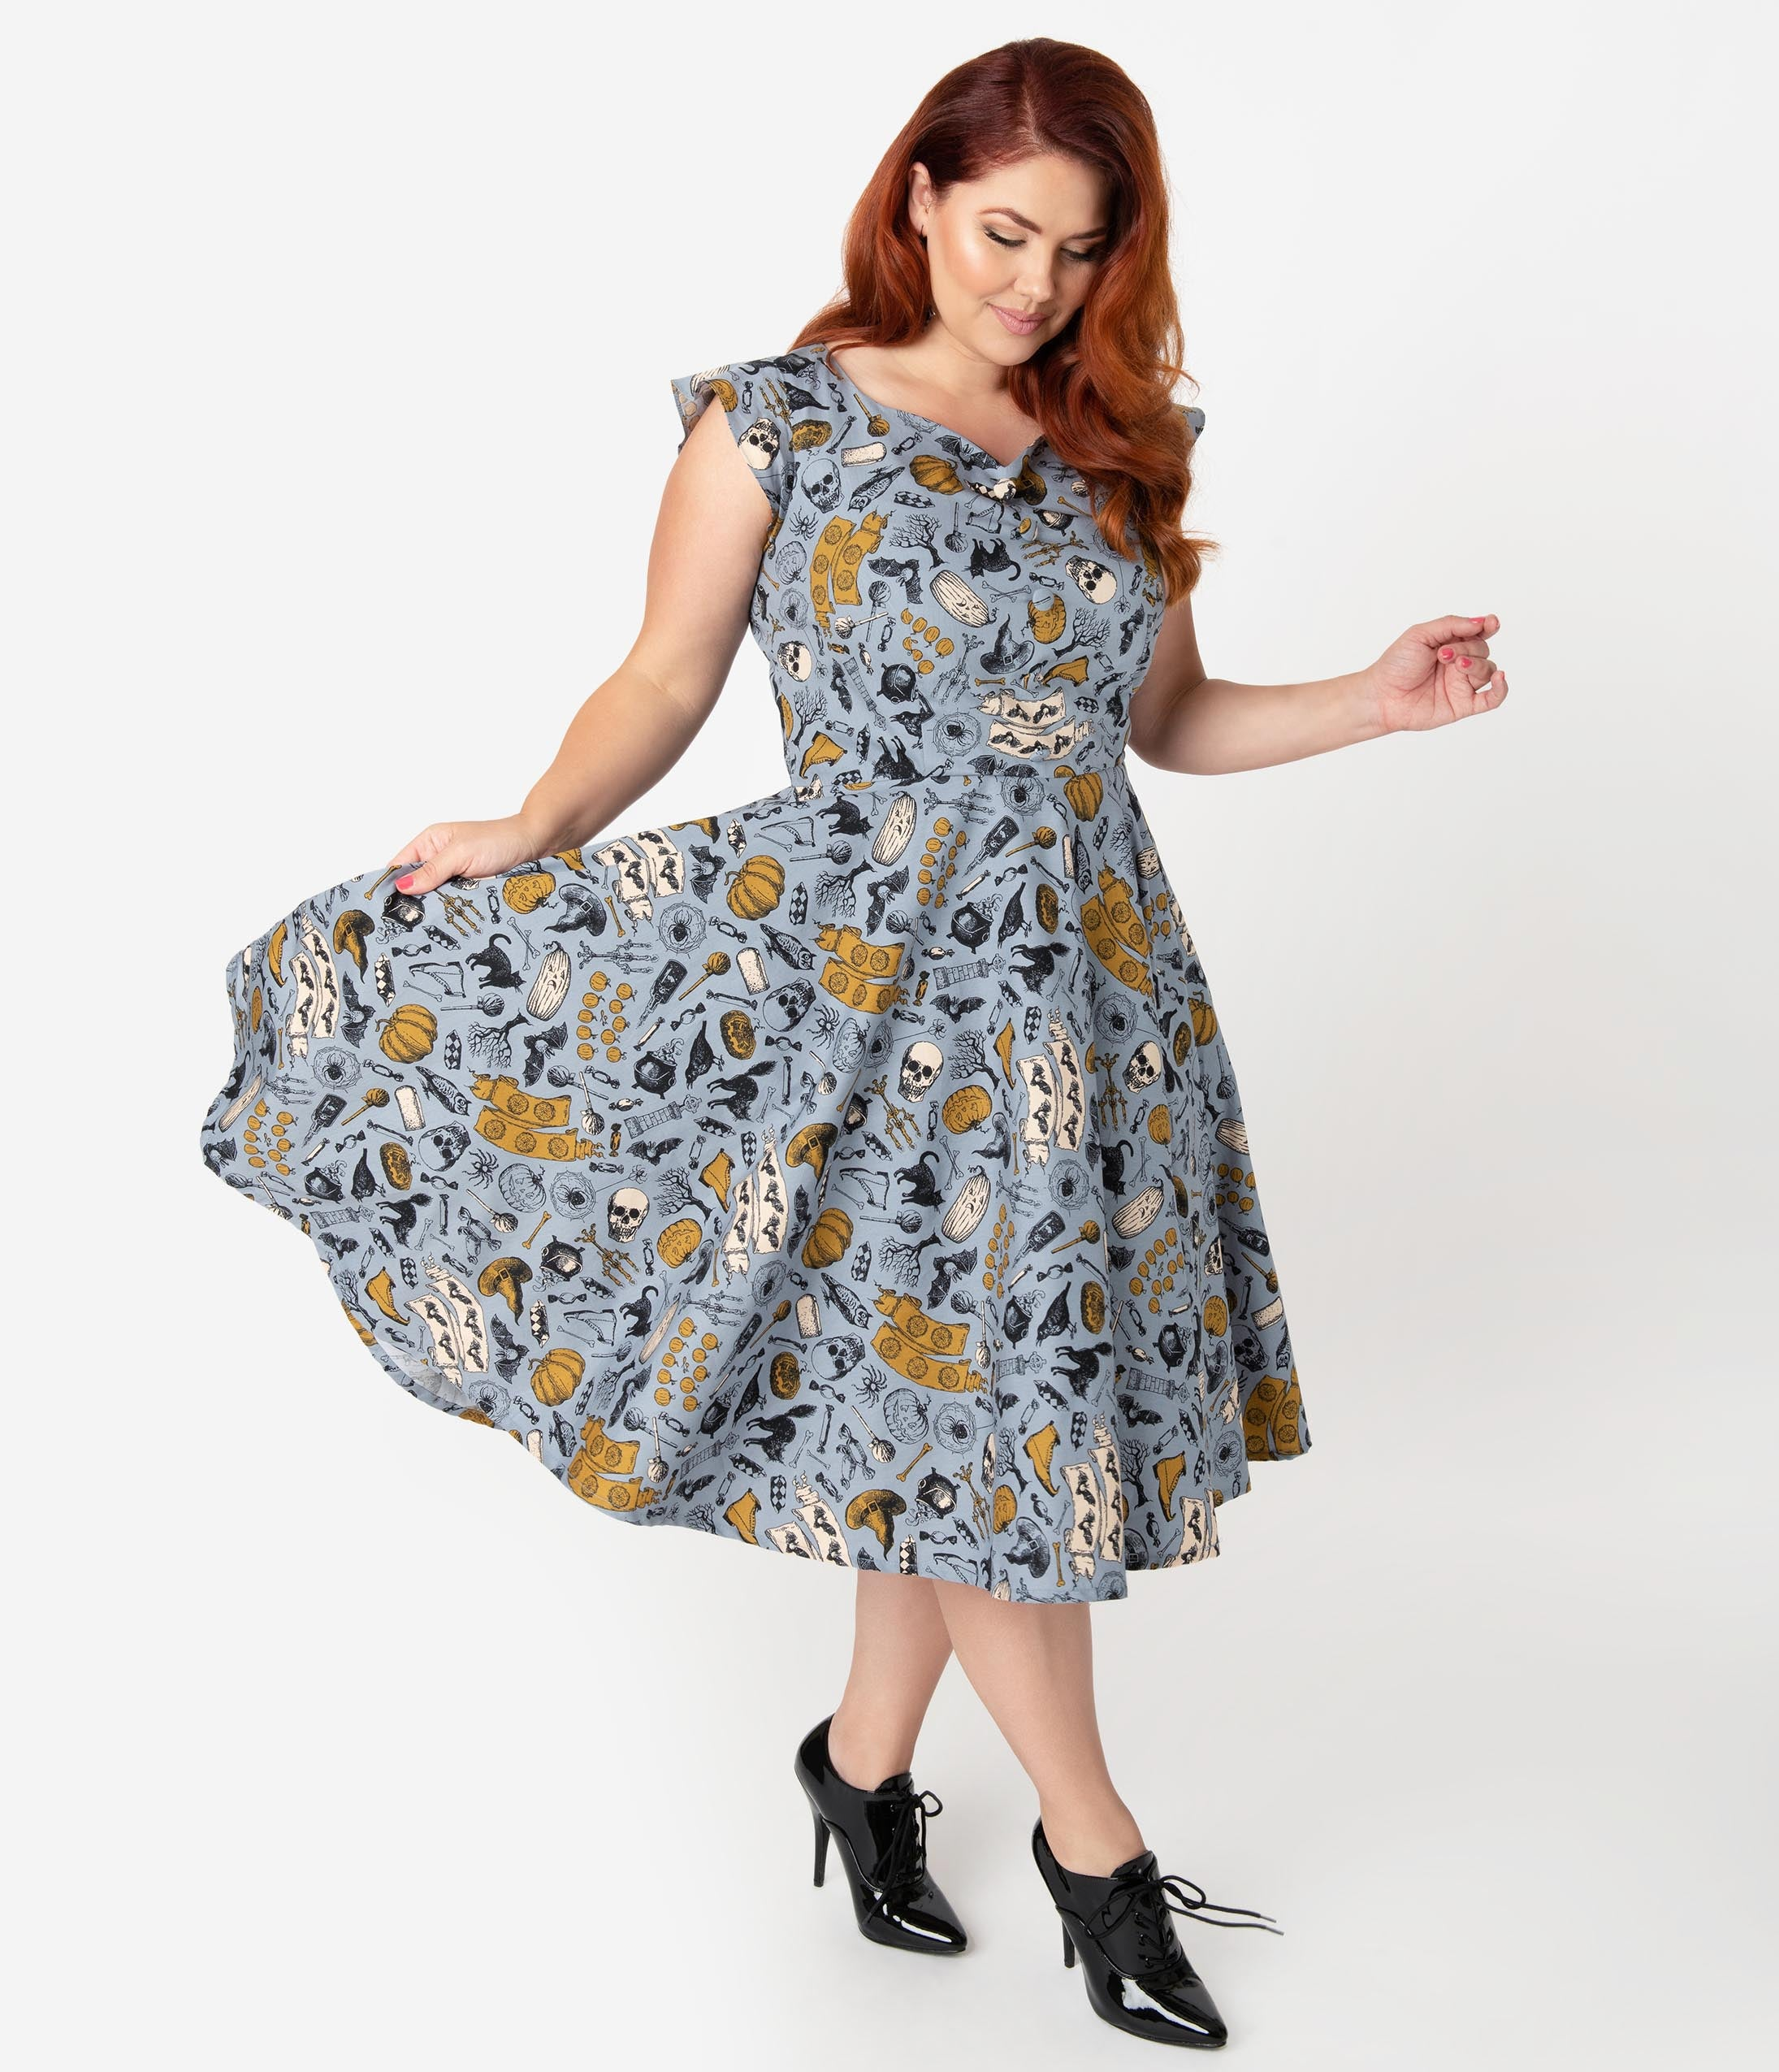 1950s Dresses, 50s Dresses | 1950s Style Dresses Plus Size 1950S Style Dusty Blue Halloween Print Judy Swing Dress $68.00 AT vintagedancer.com